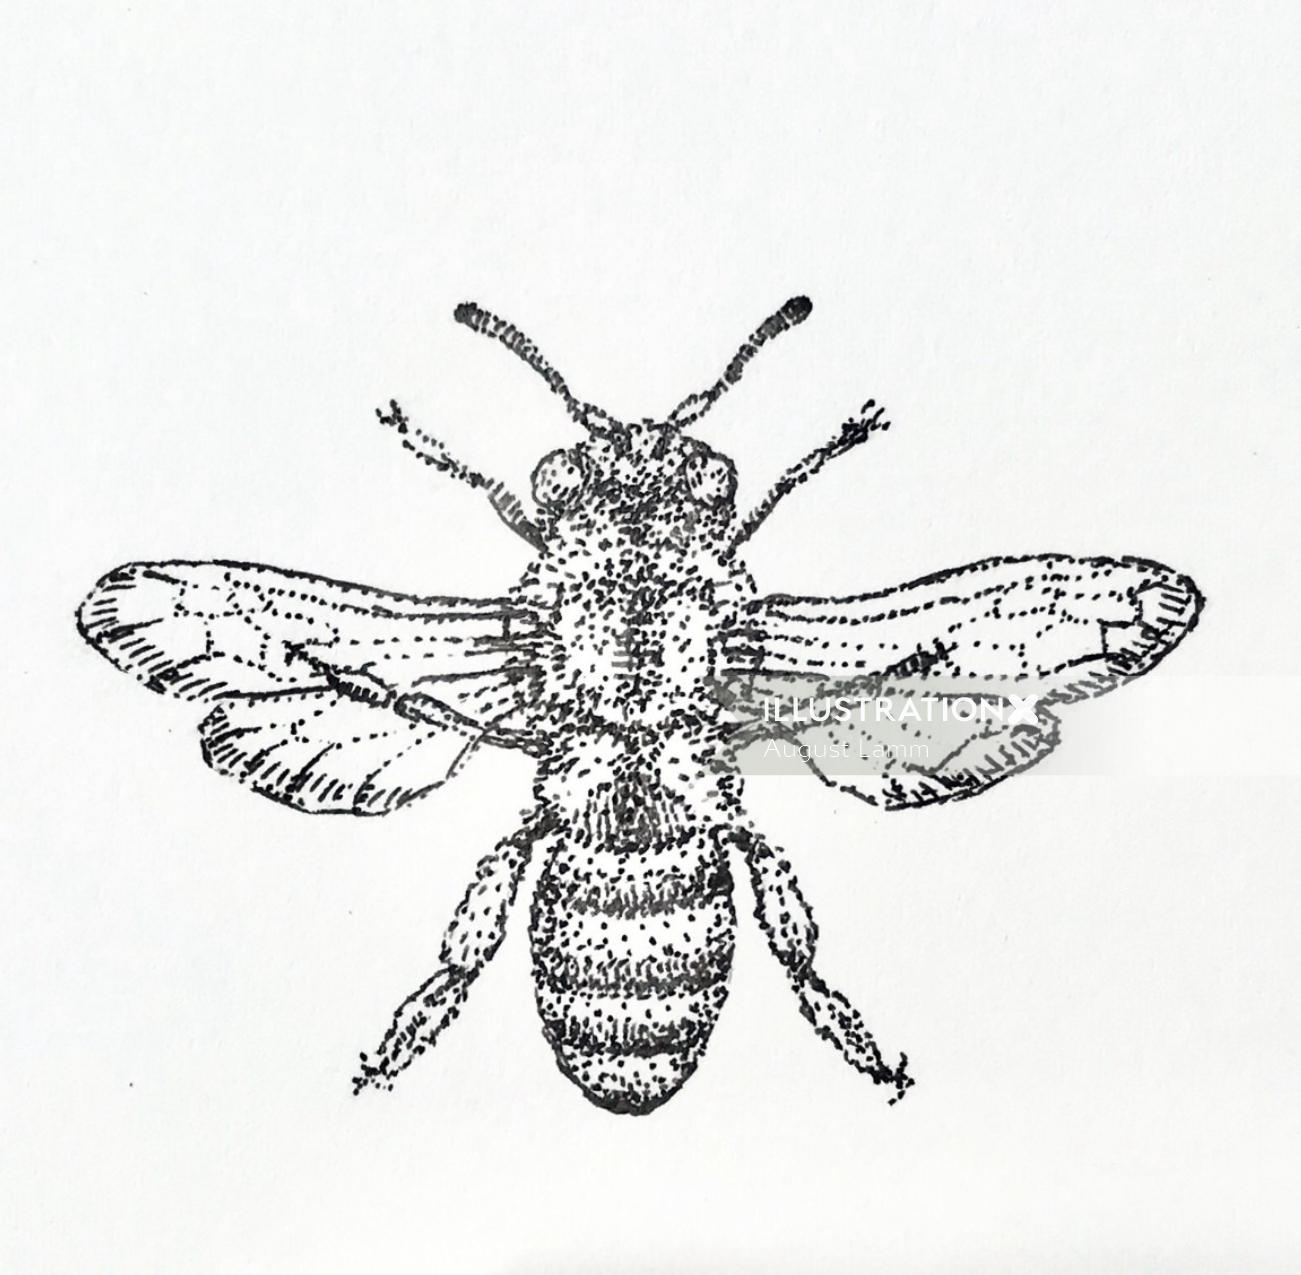 Honey bee drawing for beeswax salve company